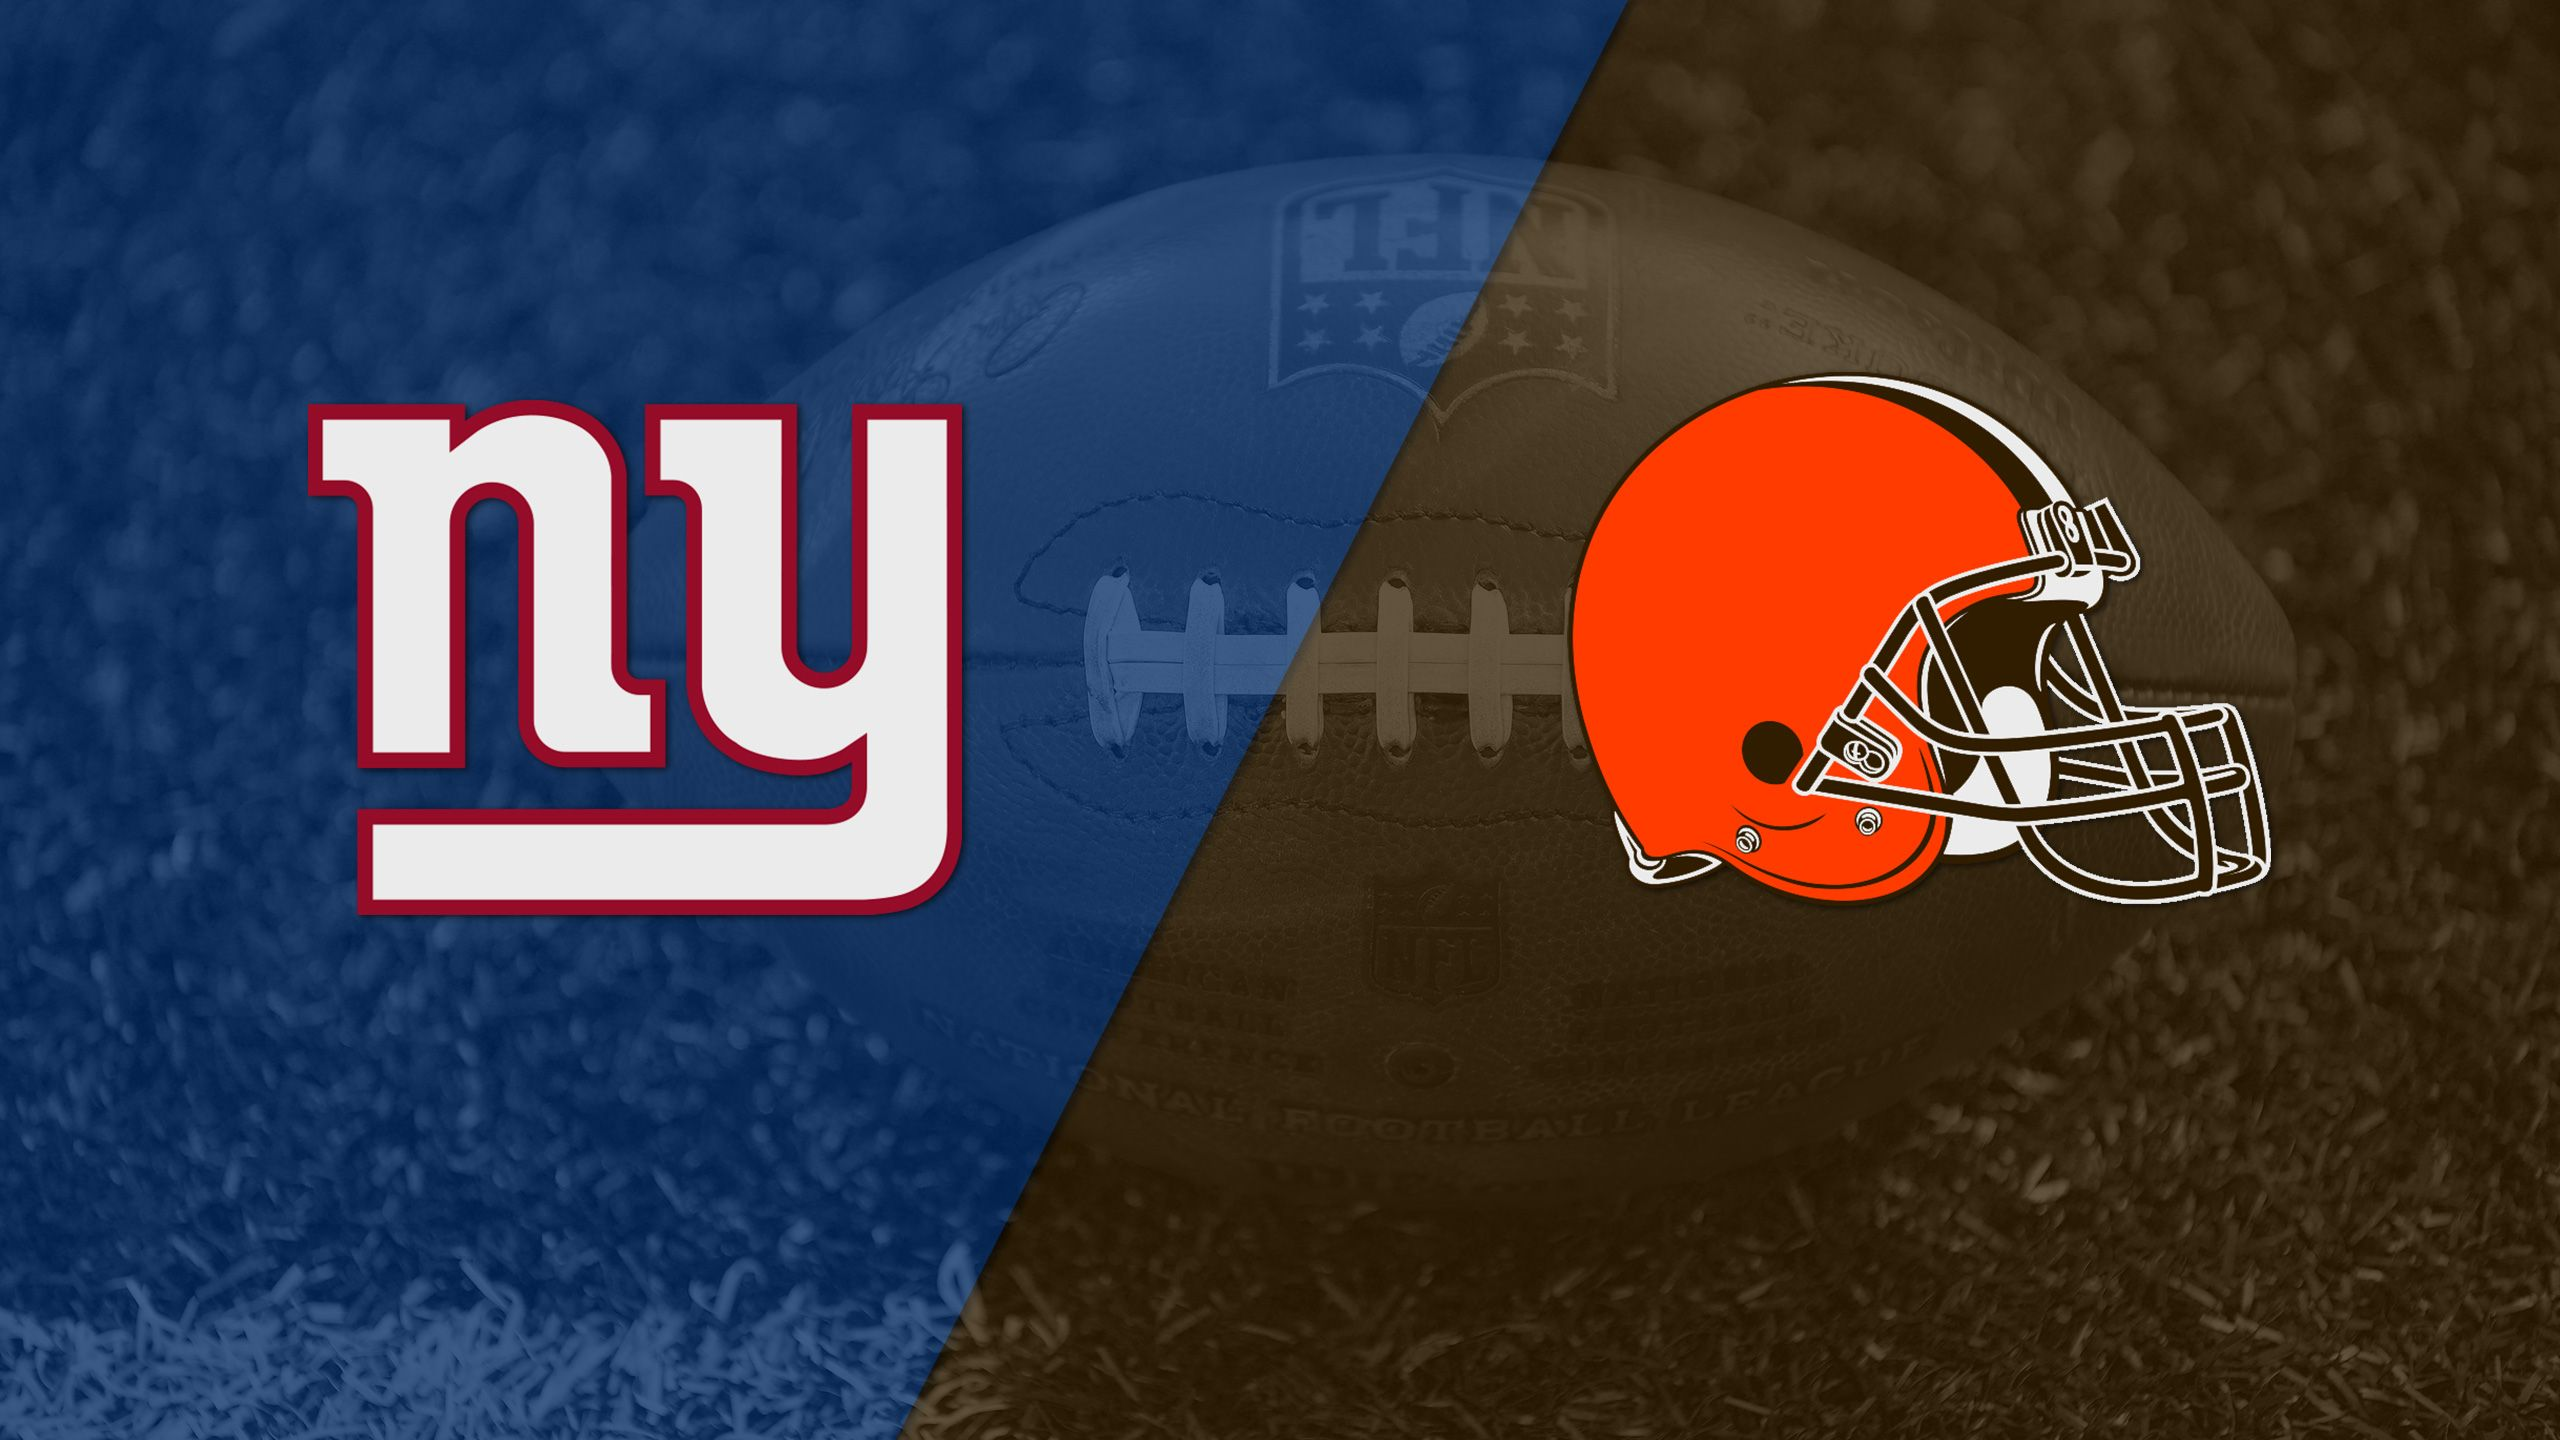 In Spanish - New York Giants vs. Cleveland Browns